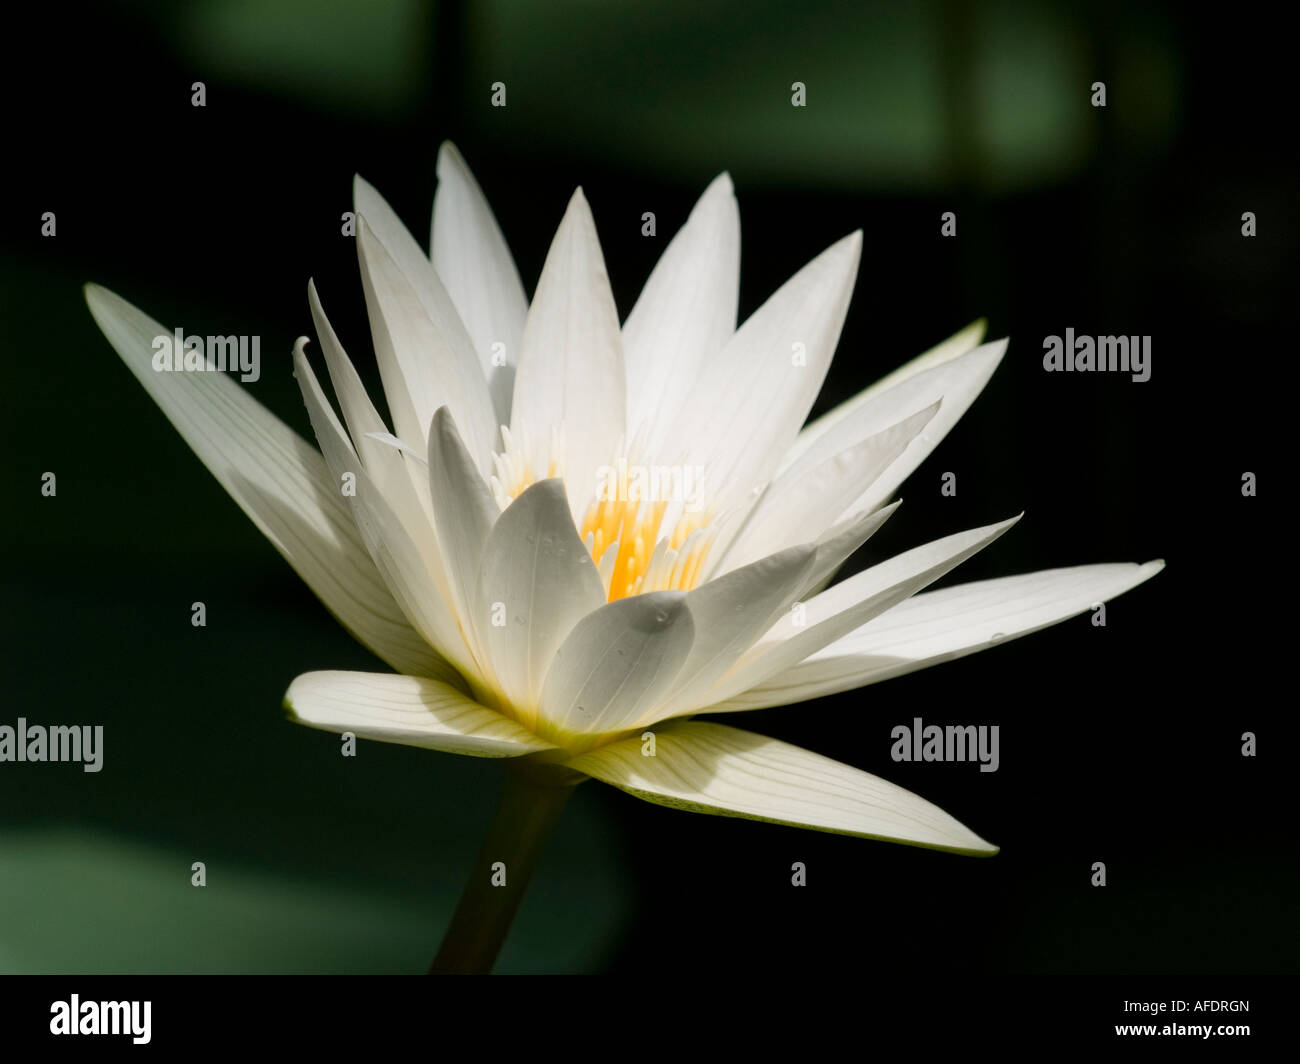 Single white water lily flower nymphaea sub tropical aquatic plant single white water lily flower nymphaea sub tropical aquatic plant izmirmasajfo Images